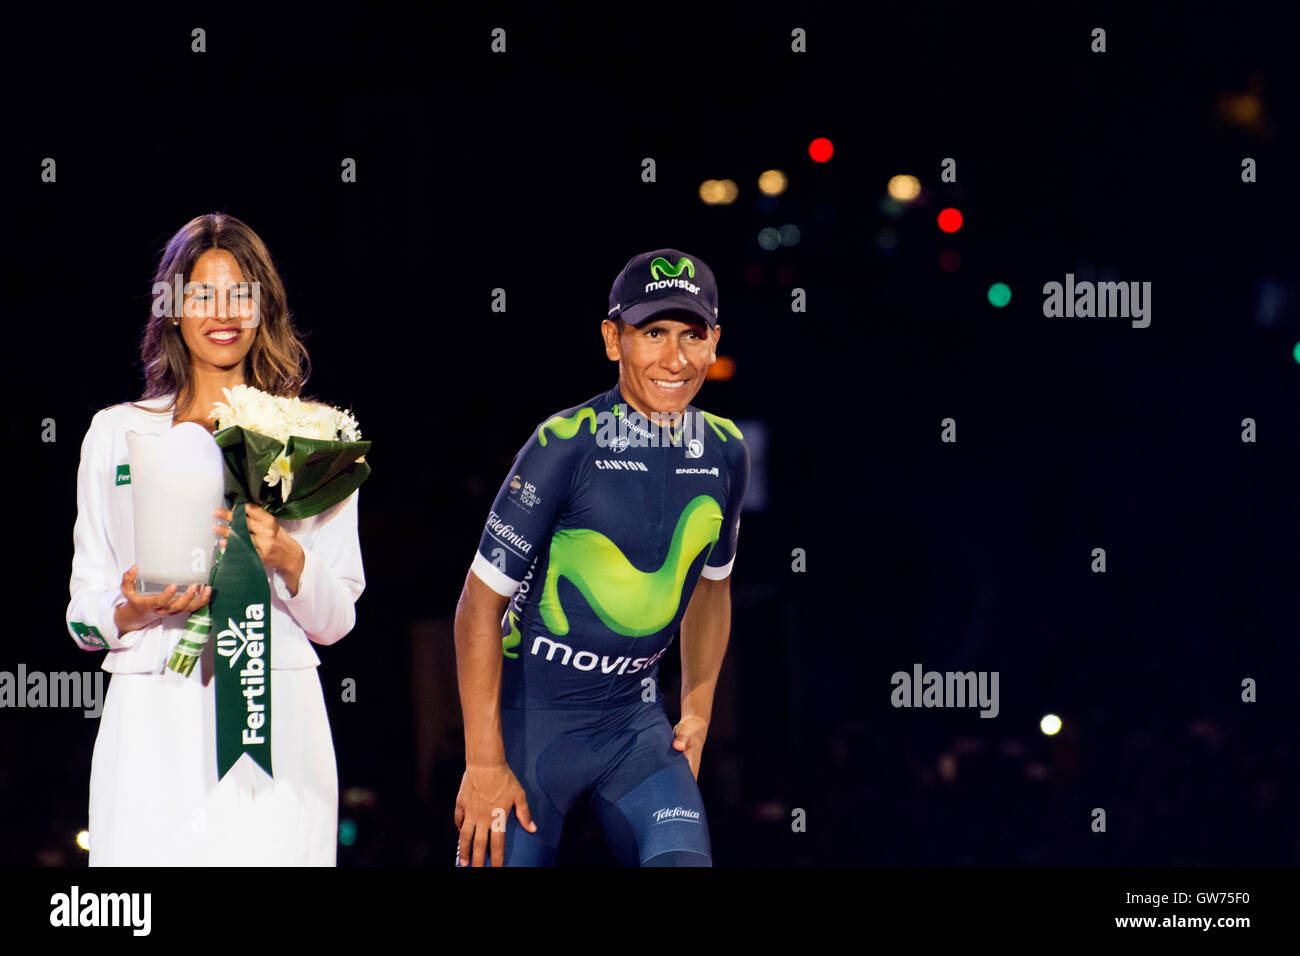 Madrid, Spain. 11th September, 2016. Nairo Quintana (Team Movistar) like winner of combinate at final podium of - Stock Image